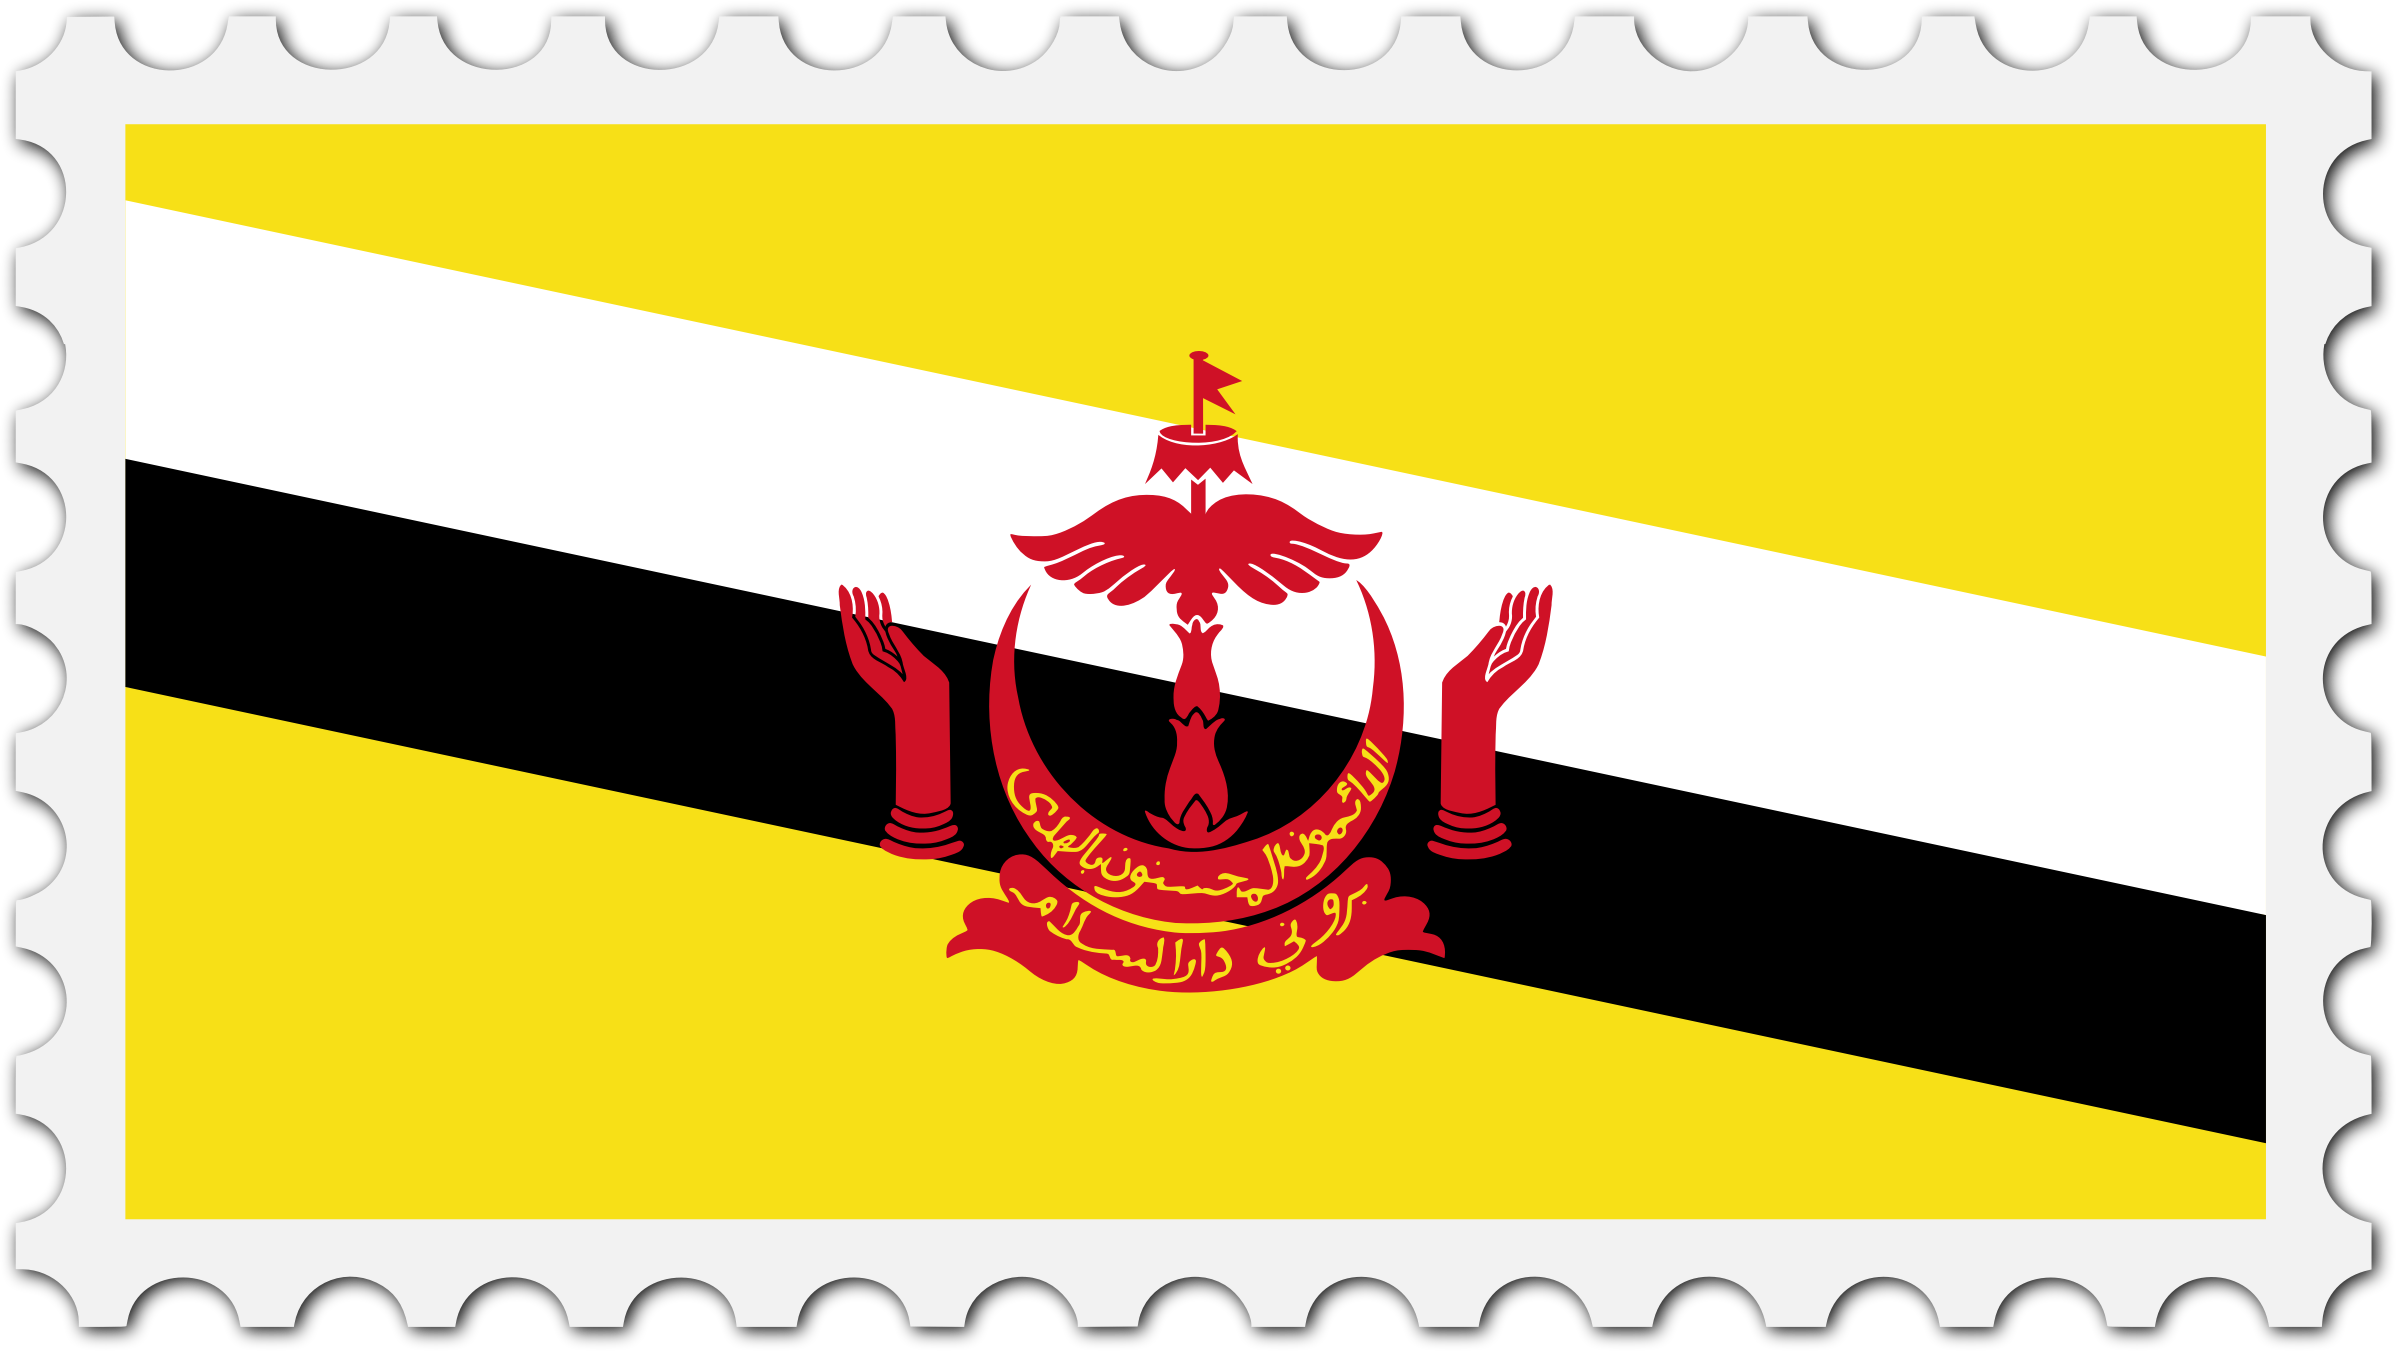 Brunei flag stamp by Firkin